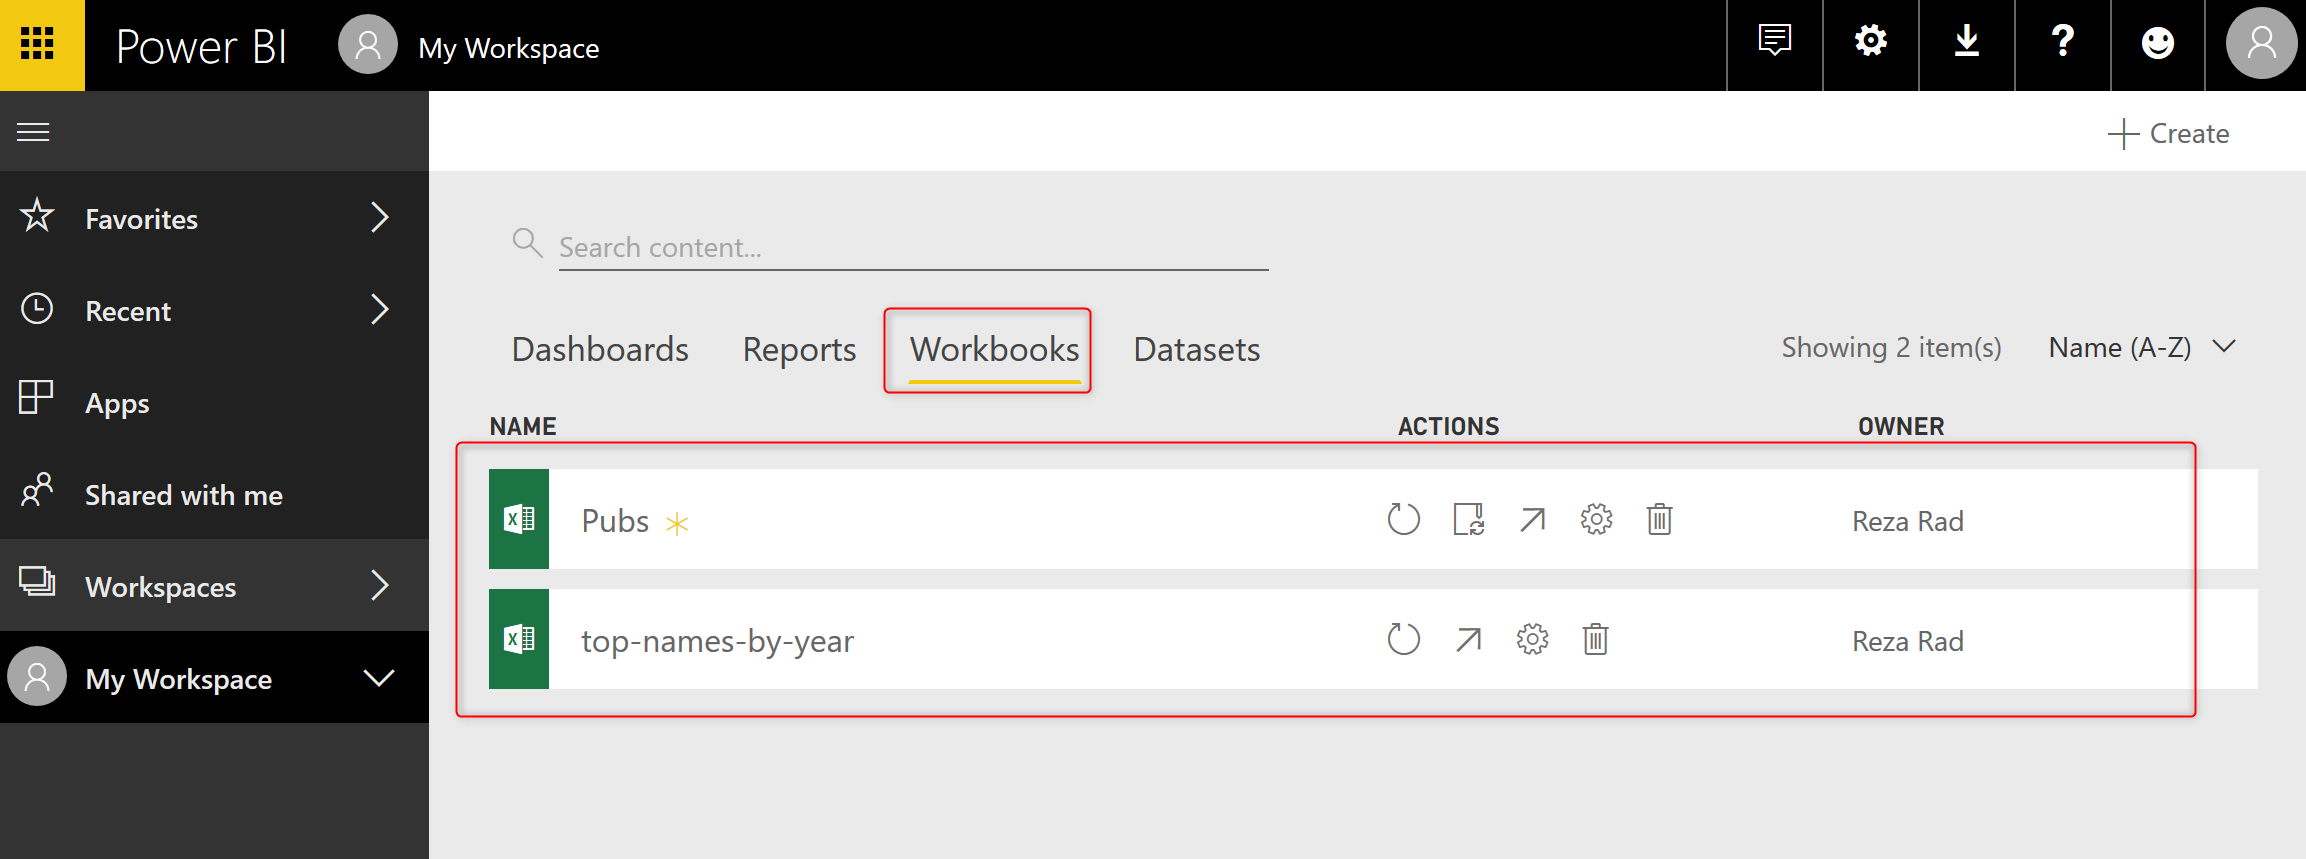 Power BI and Excel